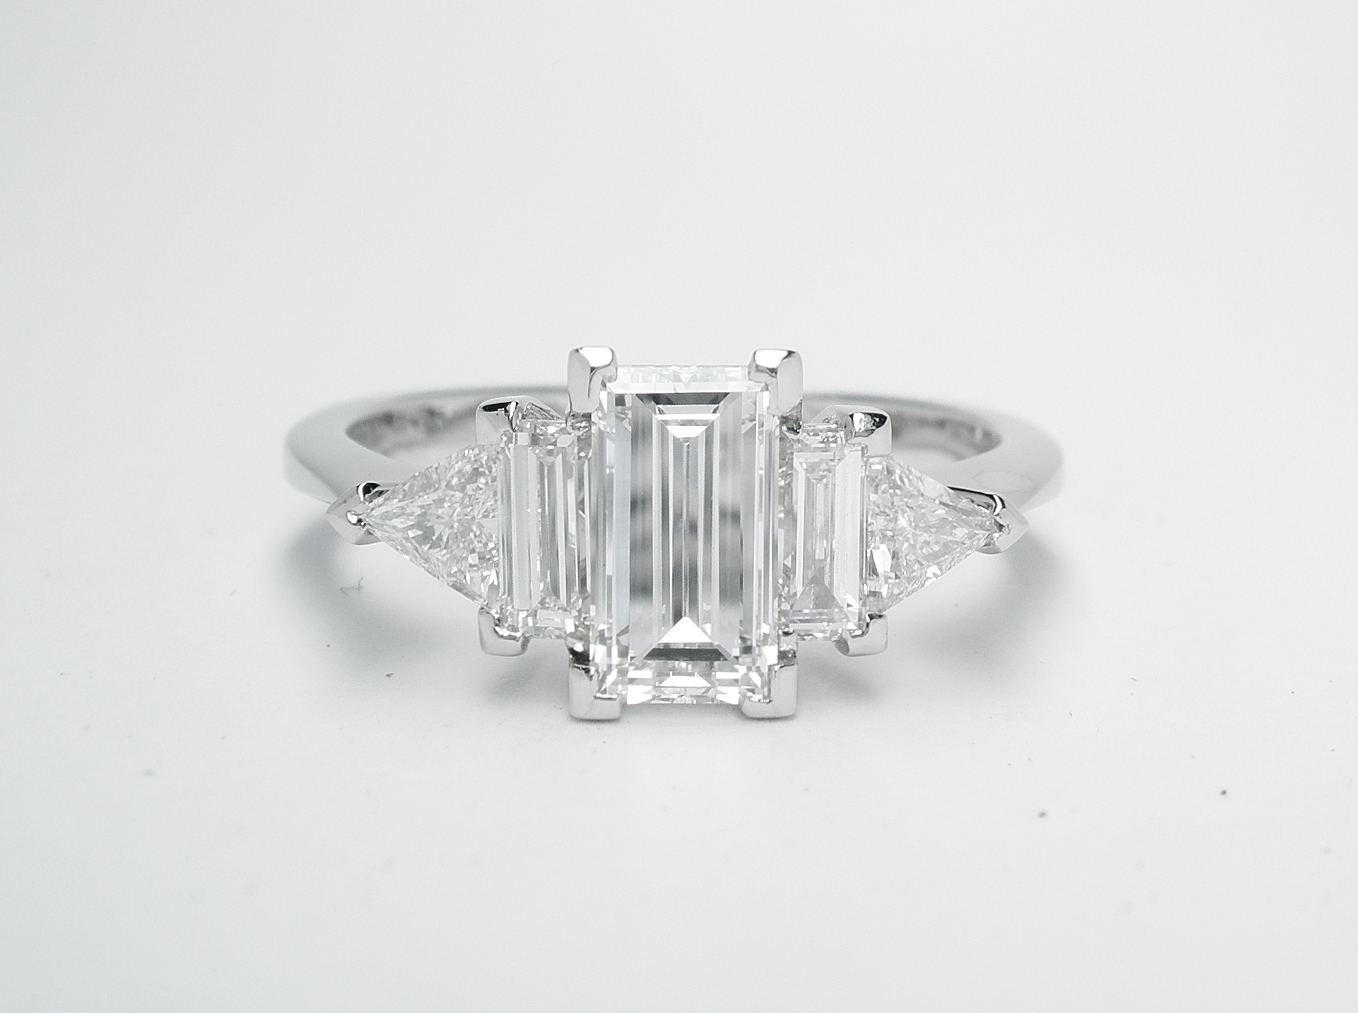 Baguette and triangle cut 5 stone diamond ring mounted in platinum.